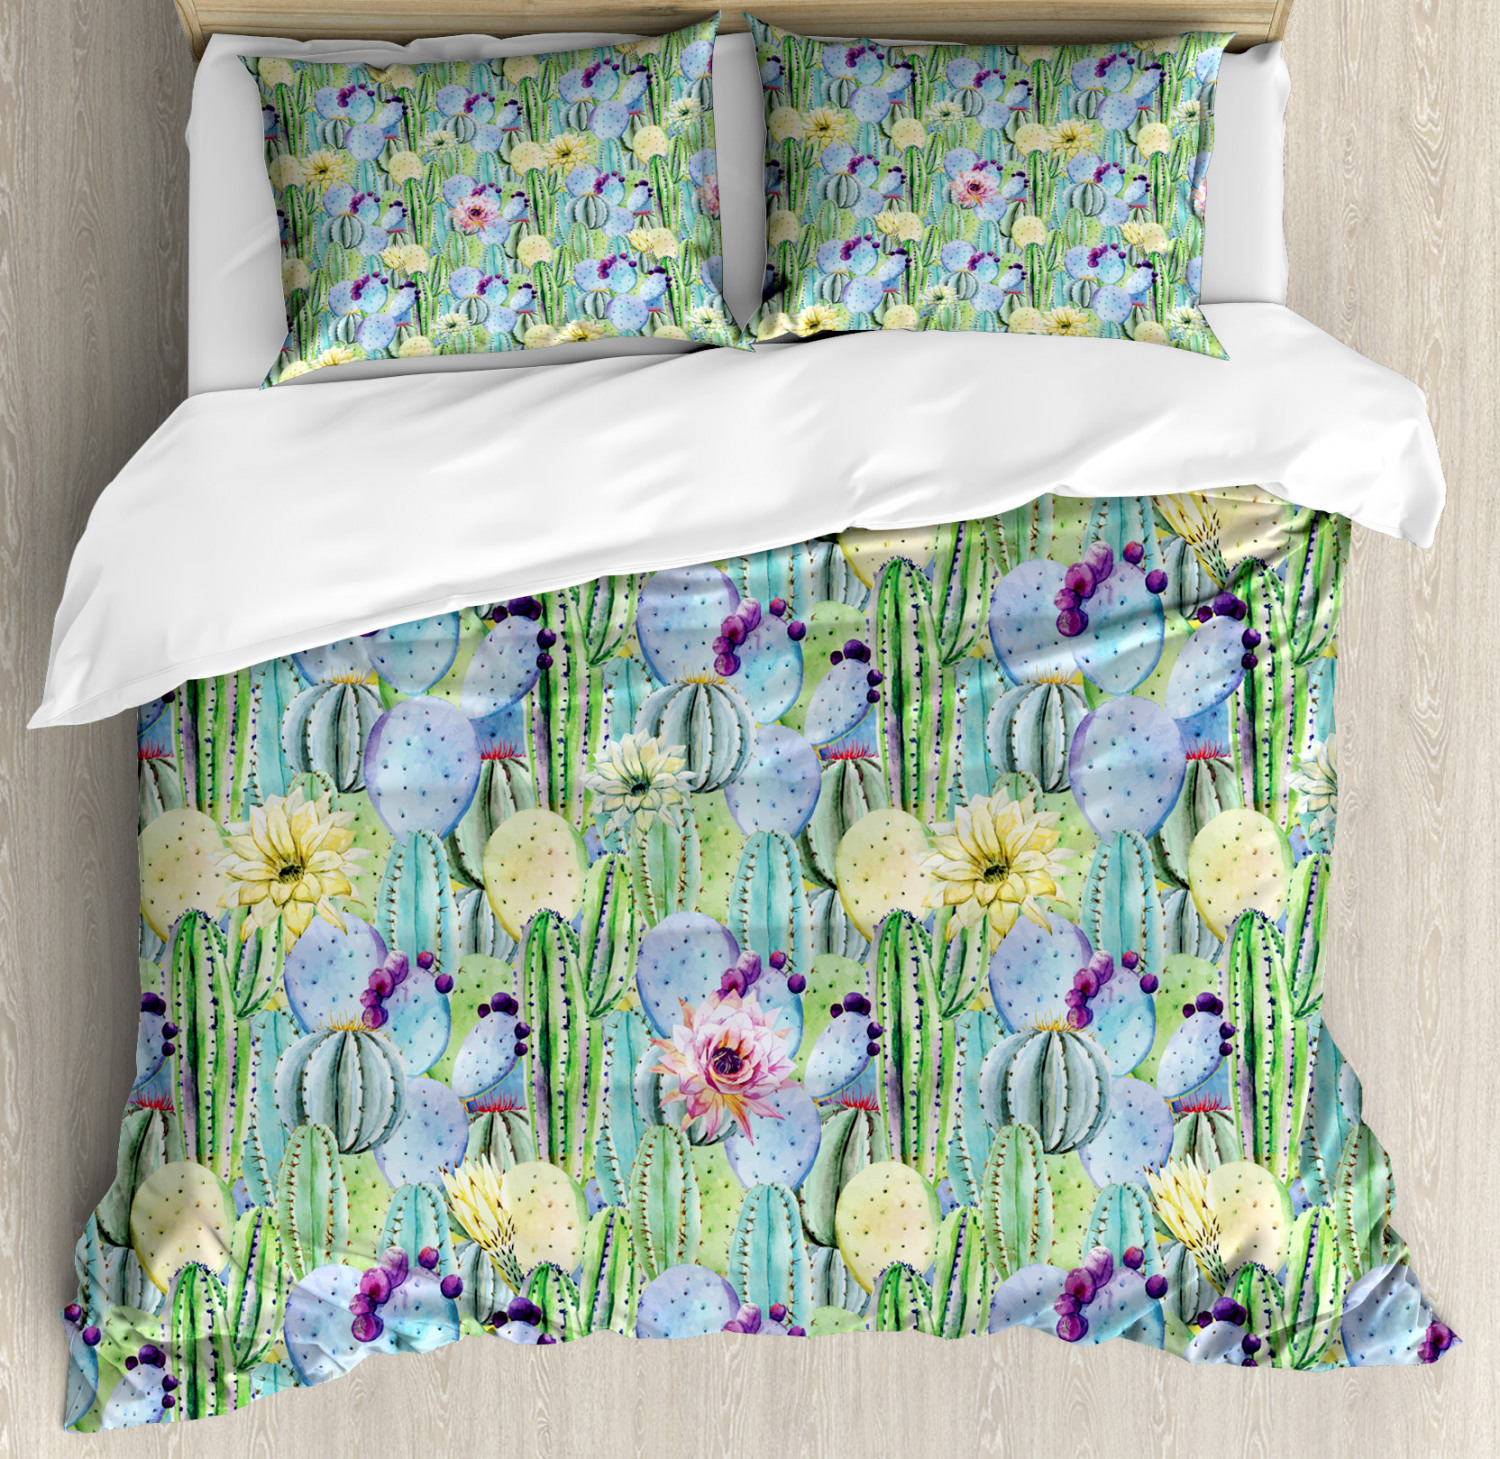 Plant Duvet Cover Set with Pillow Shams Cactus Buds Types Pattern Print